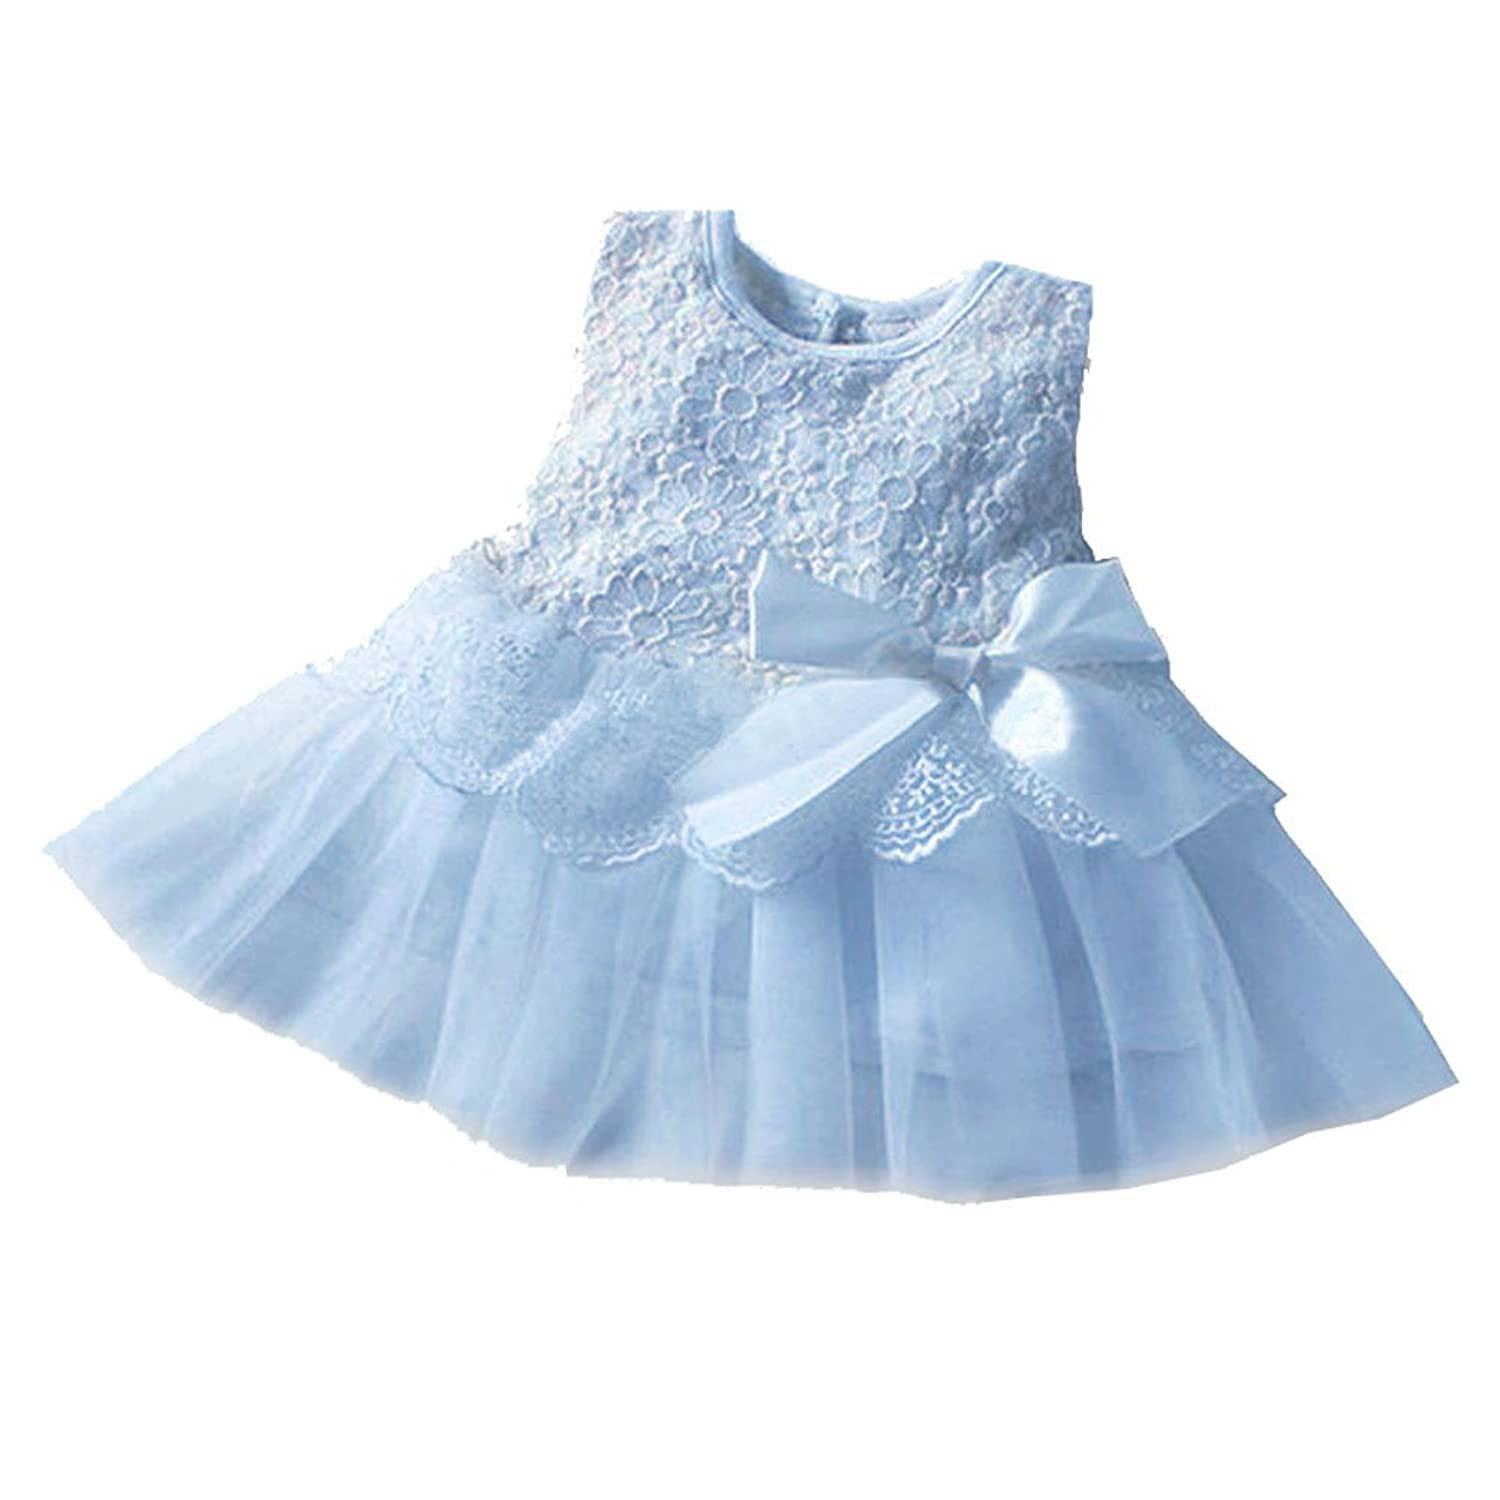 Cute Girls Dress Baby Kids Infants Toddlers Princess Party Gown ...